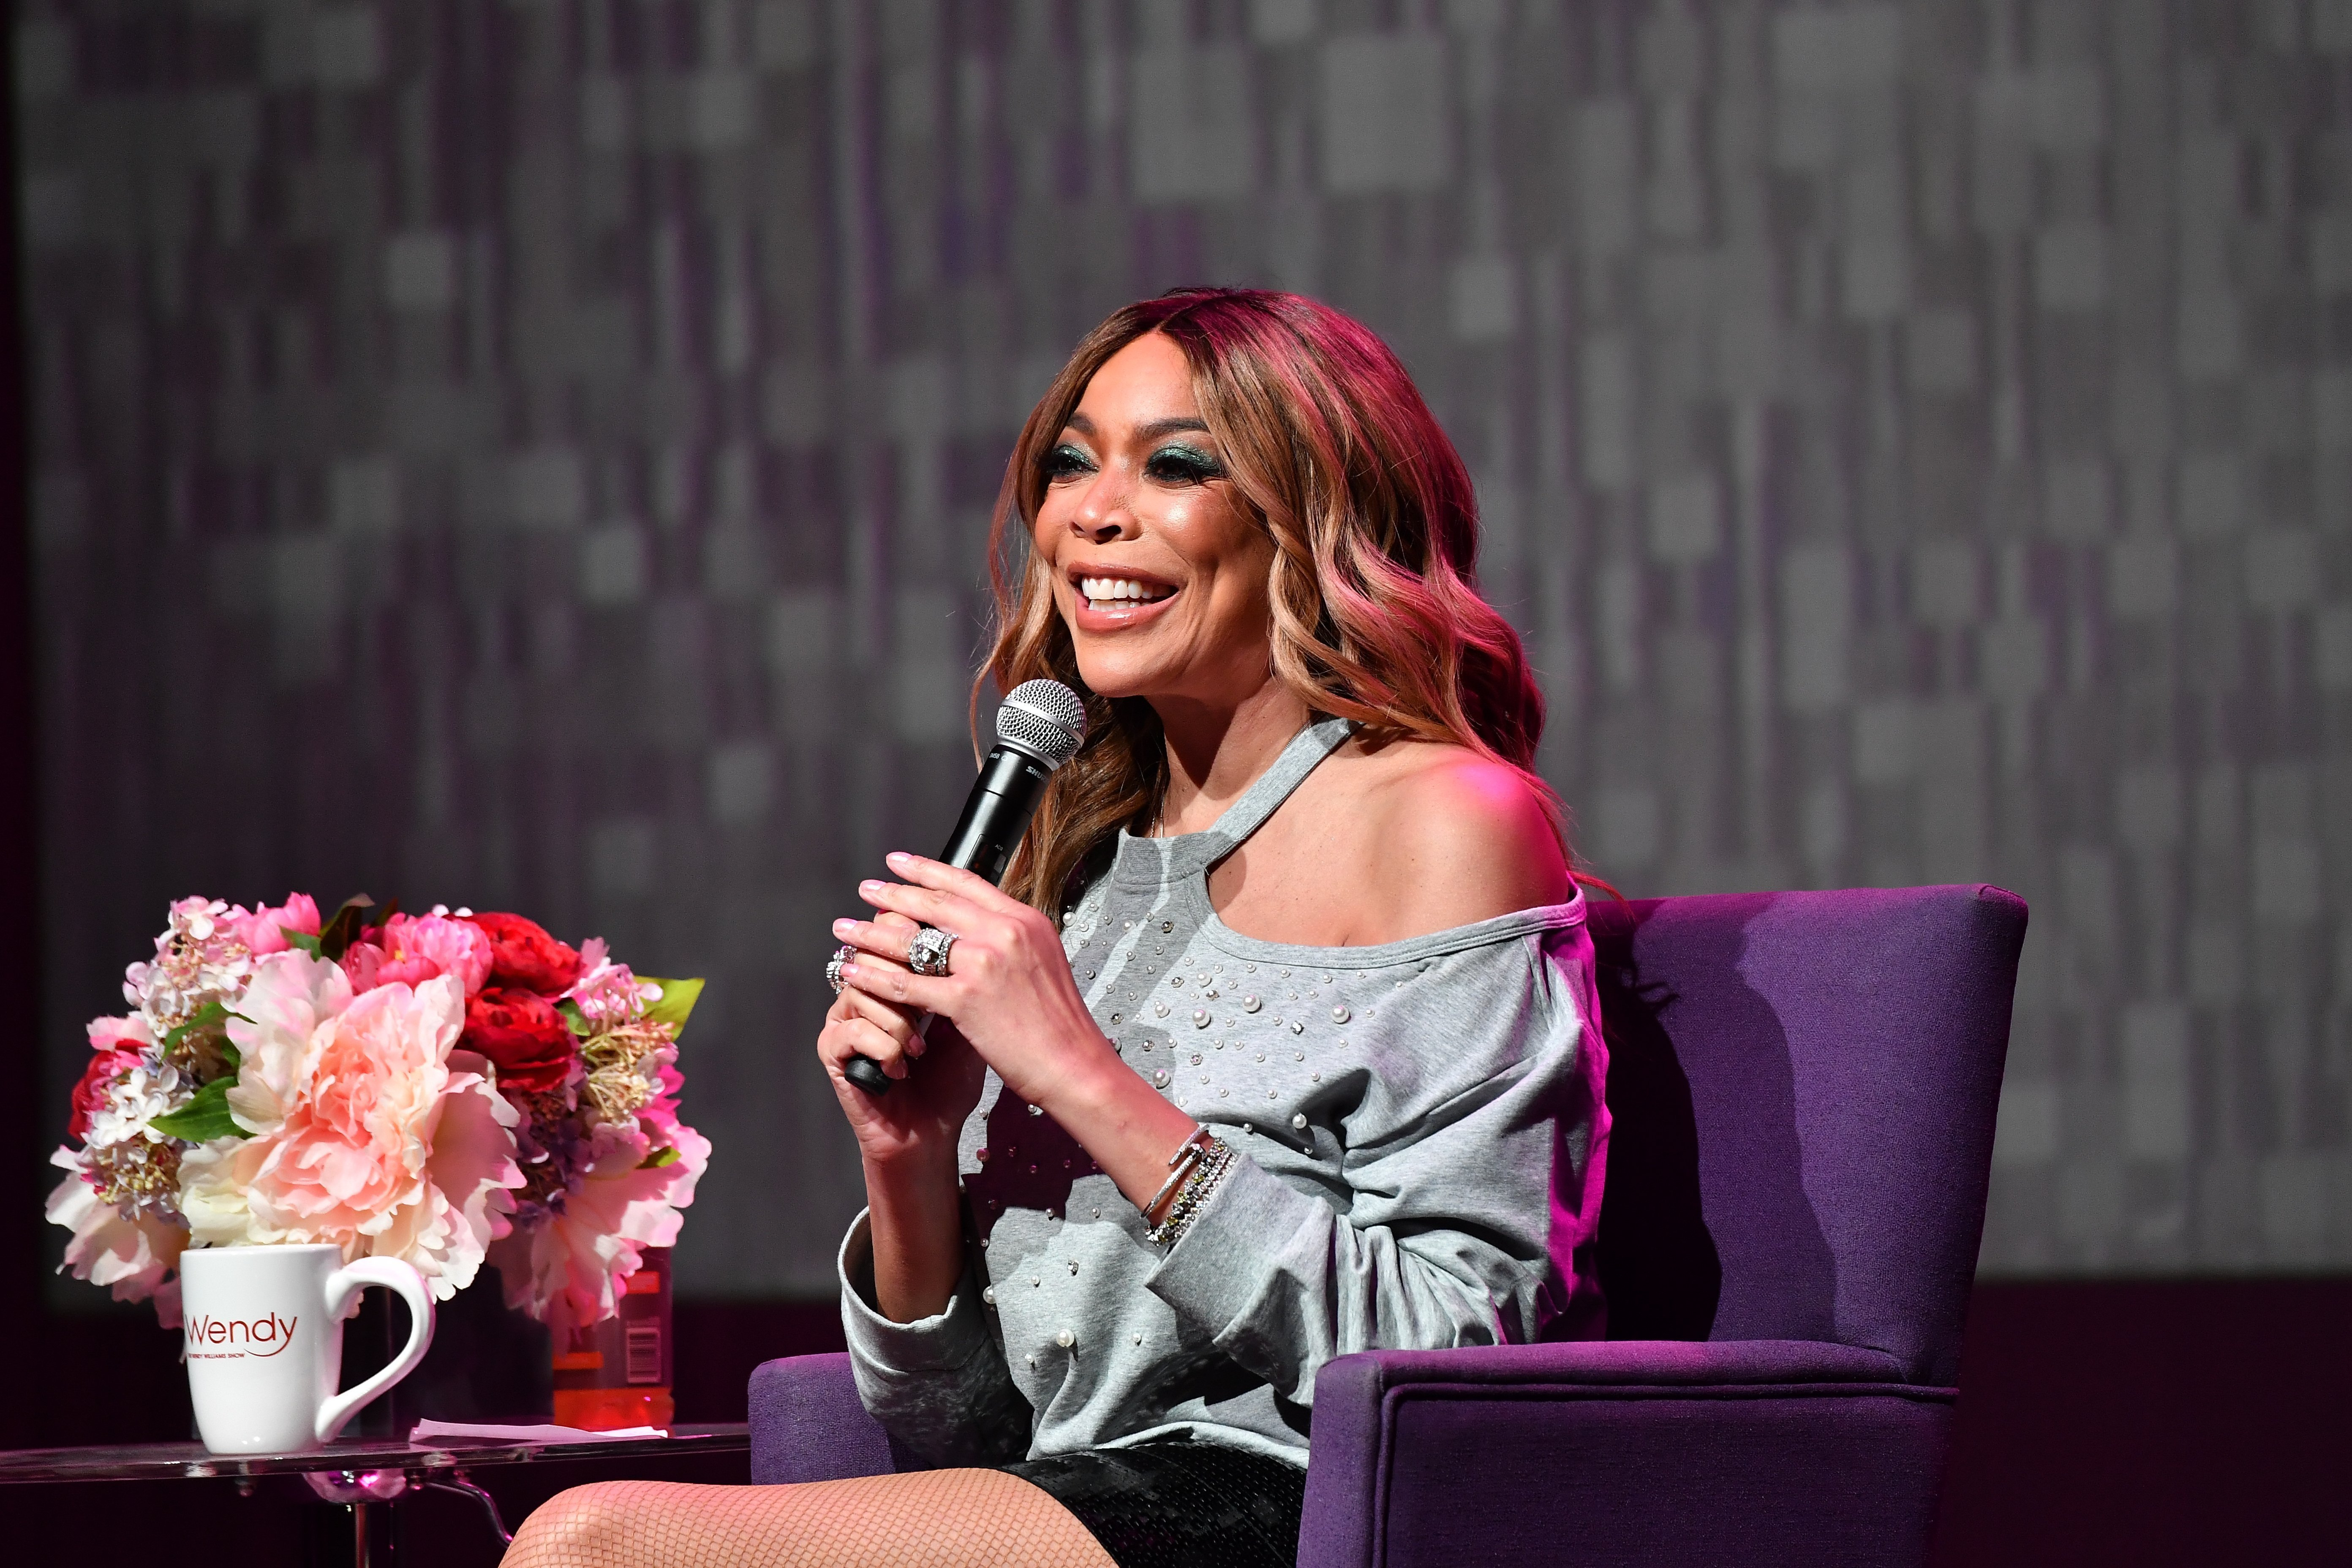 Wendy Williams speaks onstage during her celebration of 10 years of 'The Wendy Williams Show' in  August 2018. | Photo: Getty Images